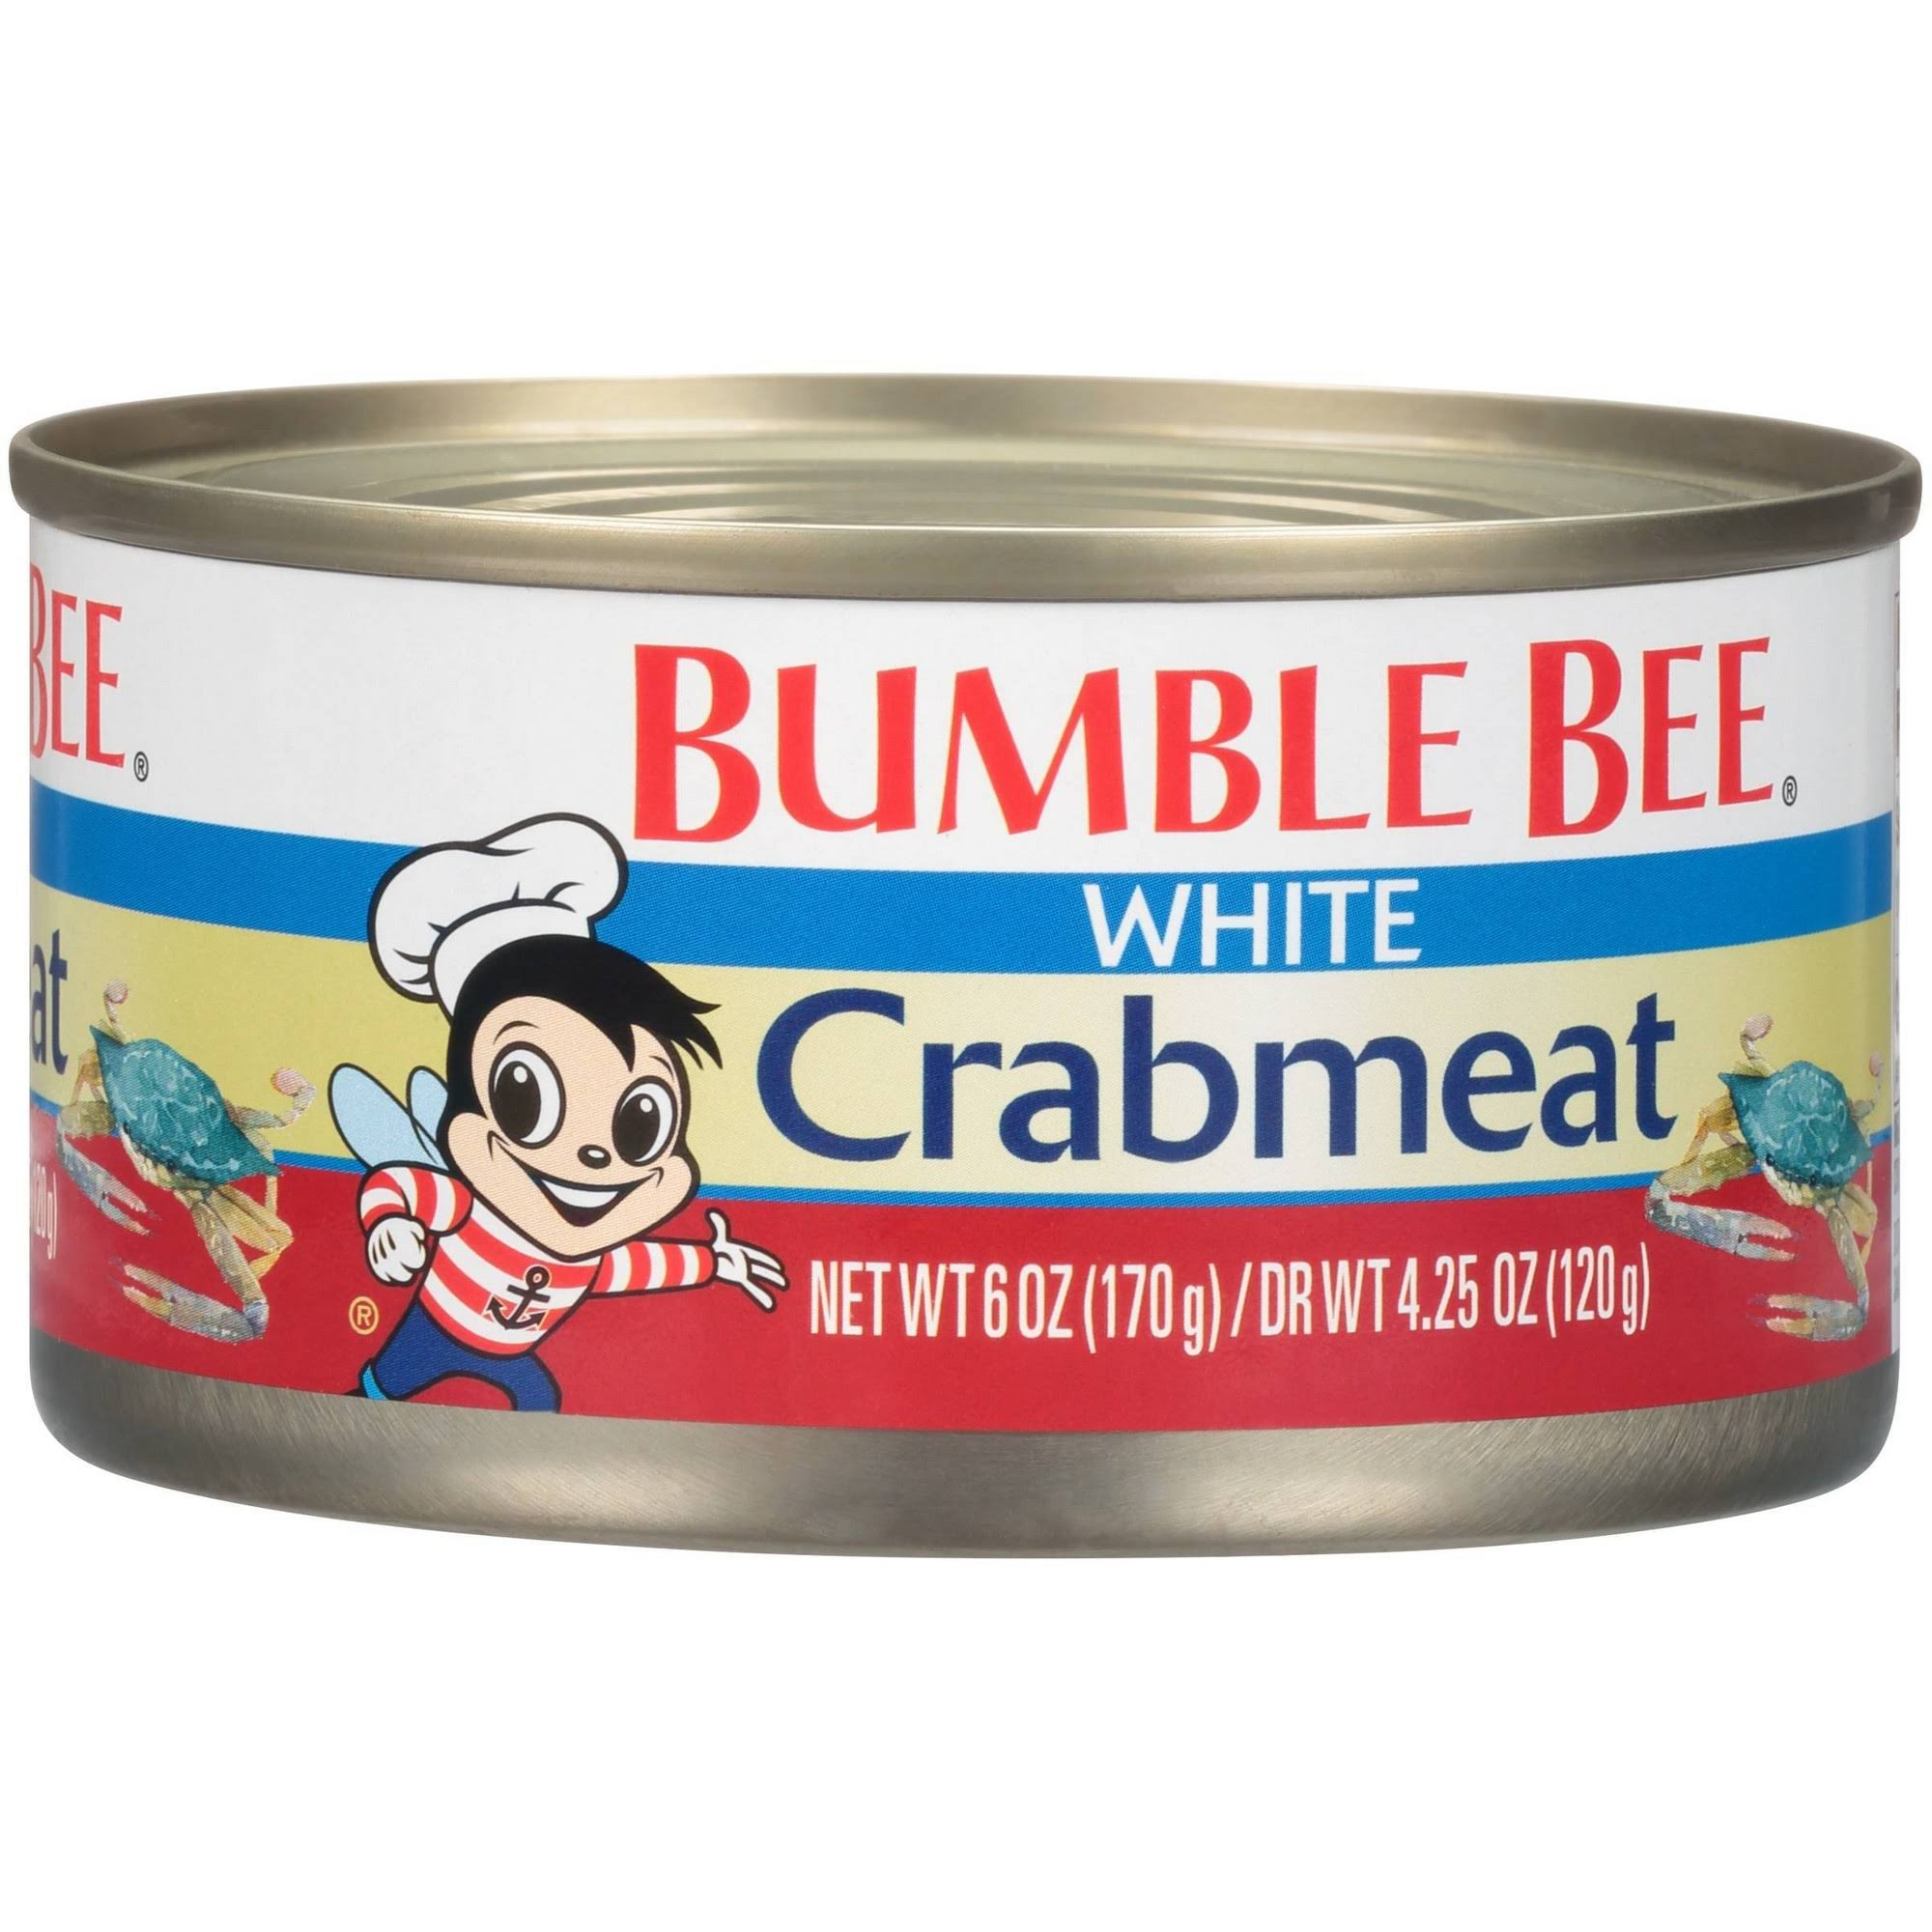 Bumble Bee Premium Select Wild Fancy White Crab Meat - 6oz